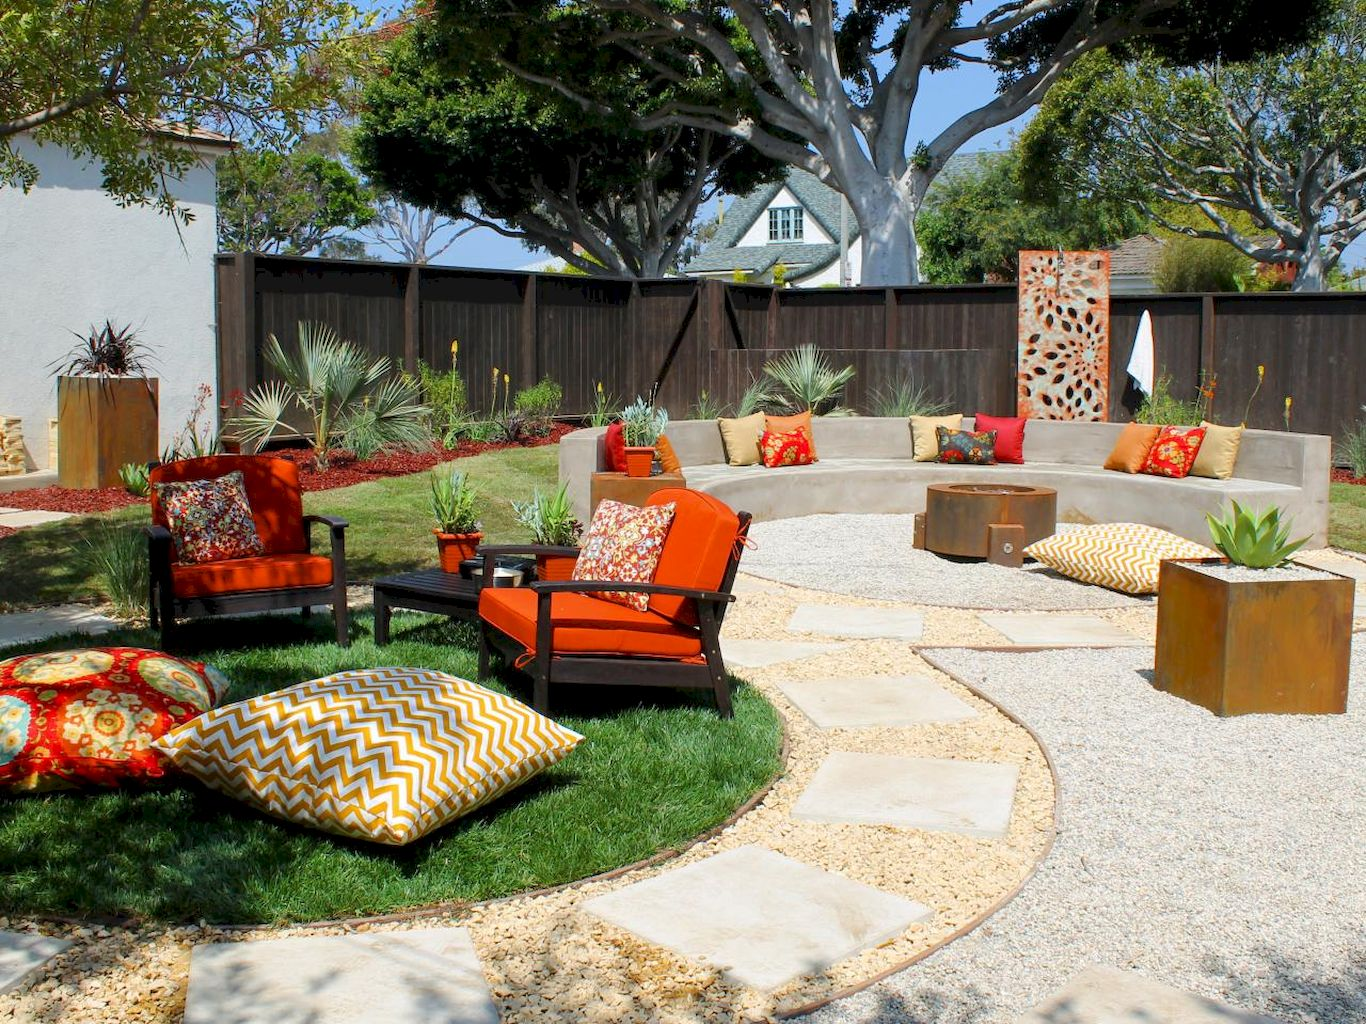 11 Easy Backyard Fire Pit with Cozy Seating Area Ideas